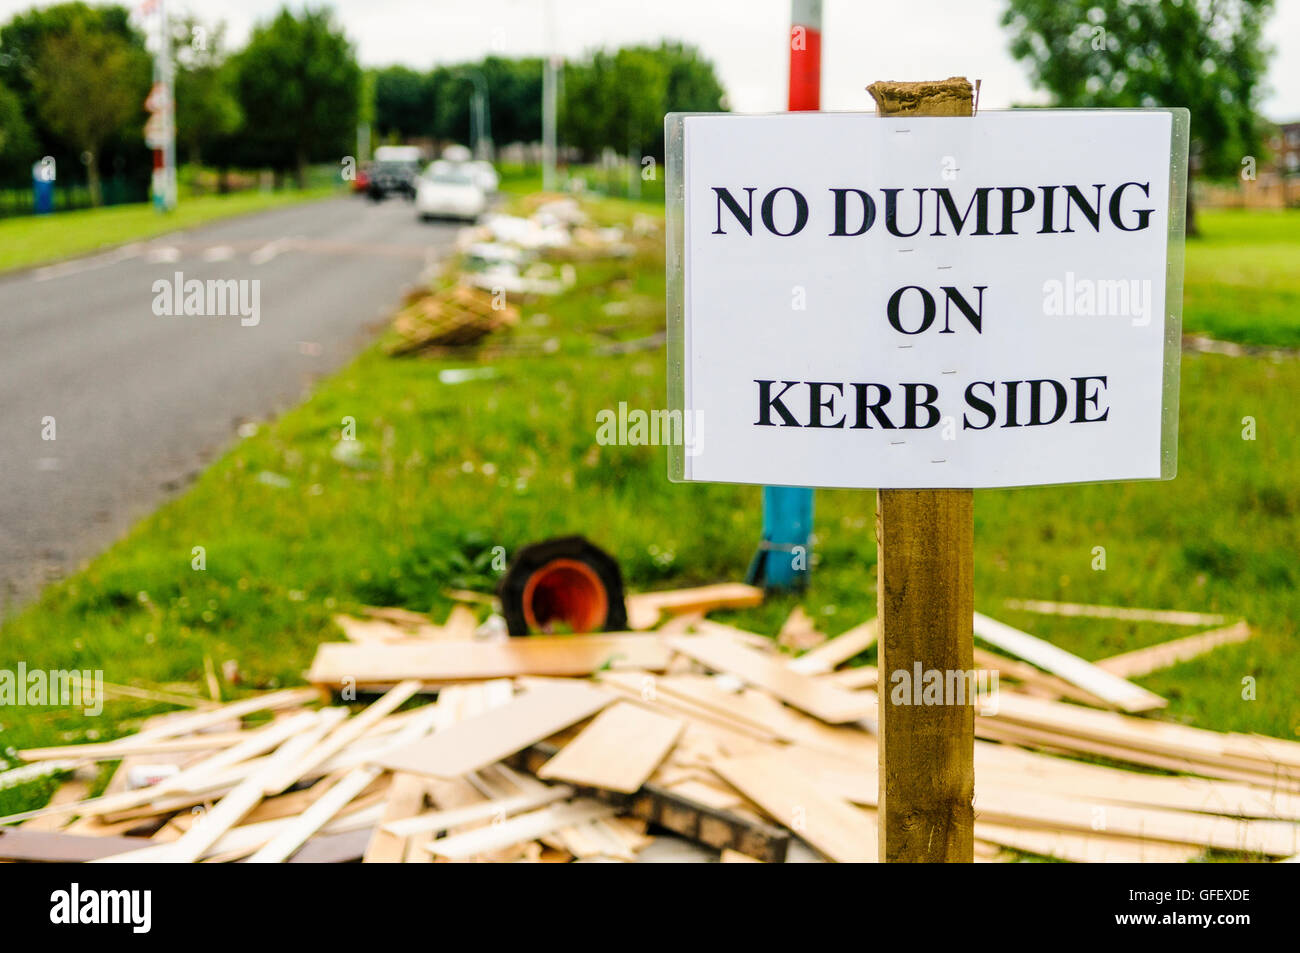 A sign on a grass verge warning people not to dump rubbish on the kerb side, with a lot of discarded wood, rubbish - Stock Image